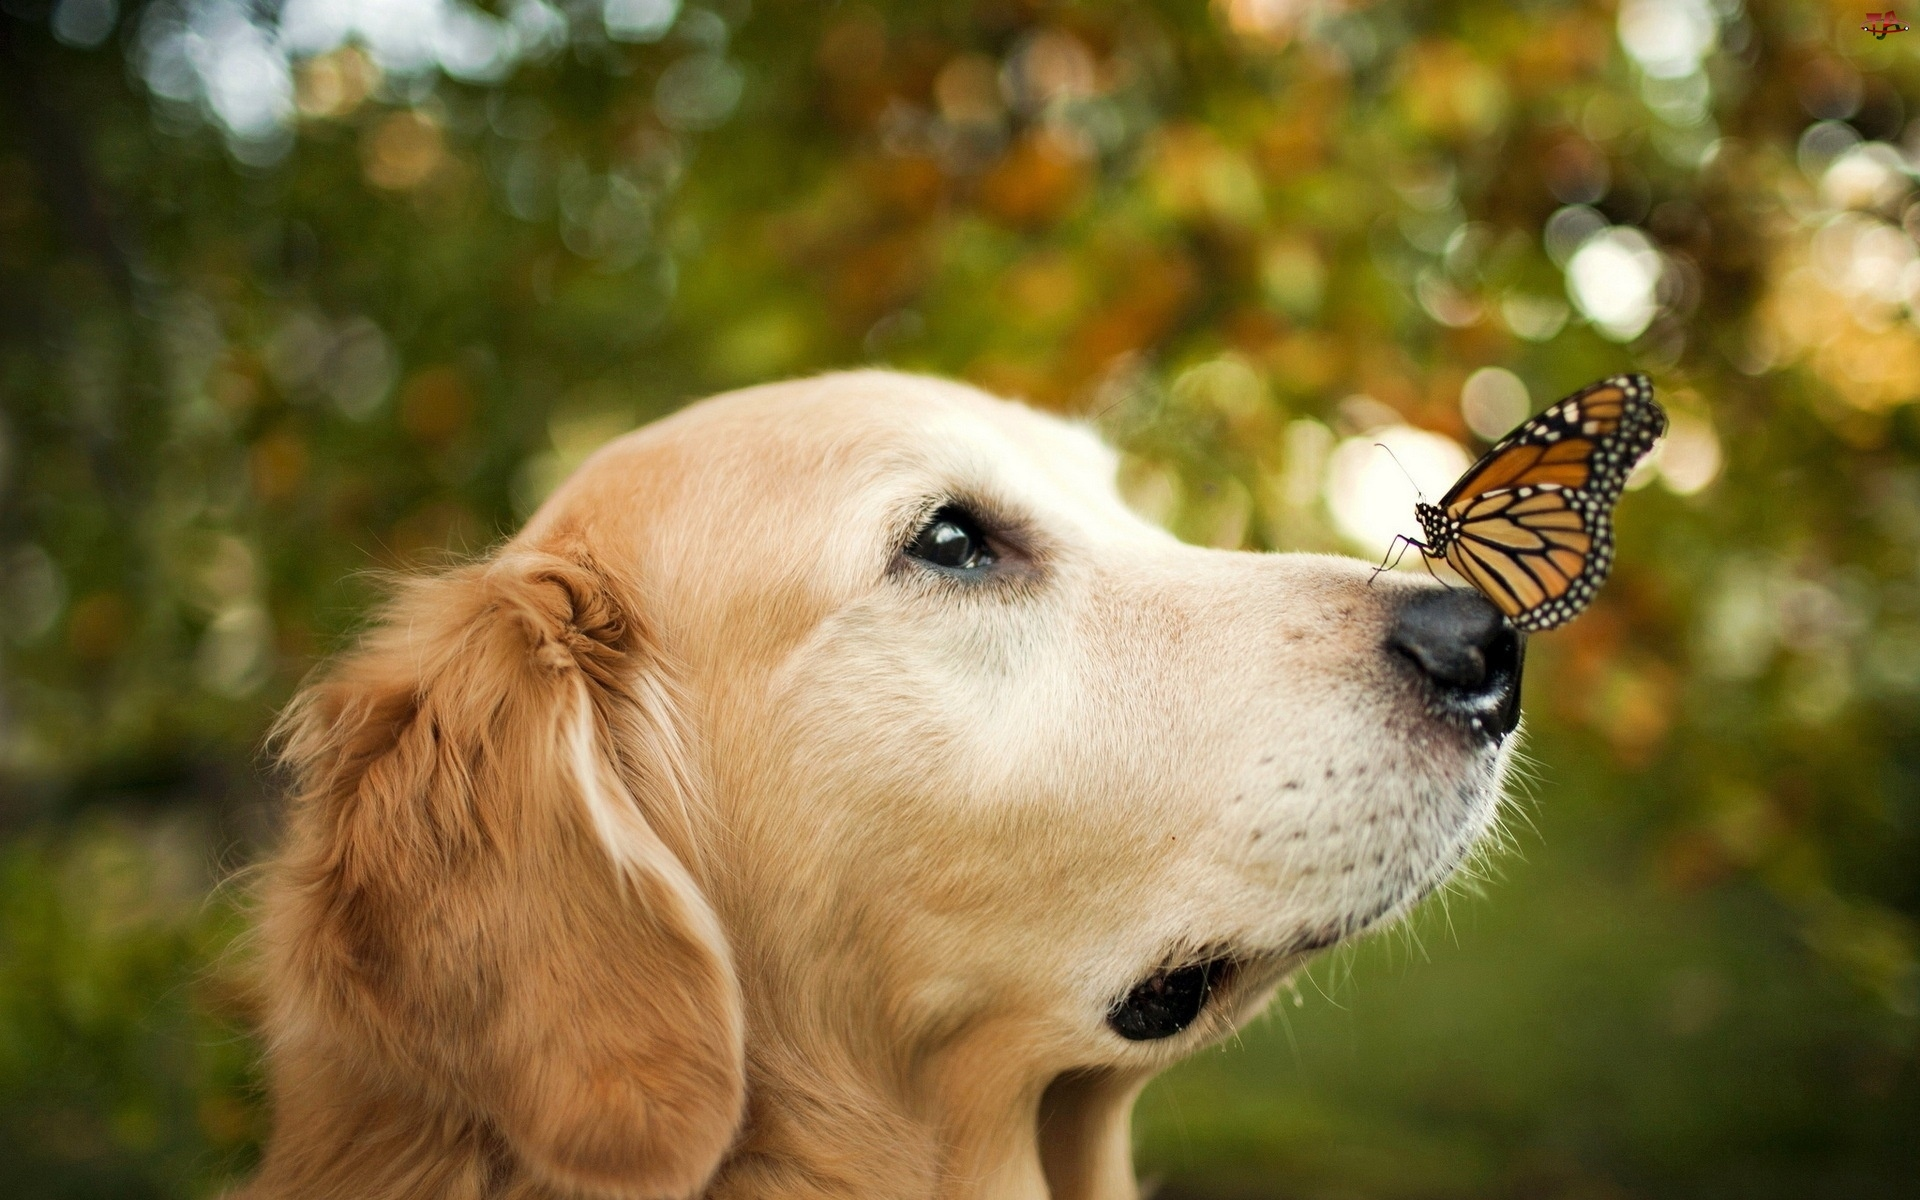 Motyl, Golden retriever, Pies